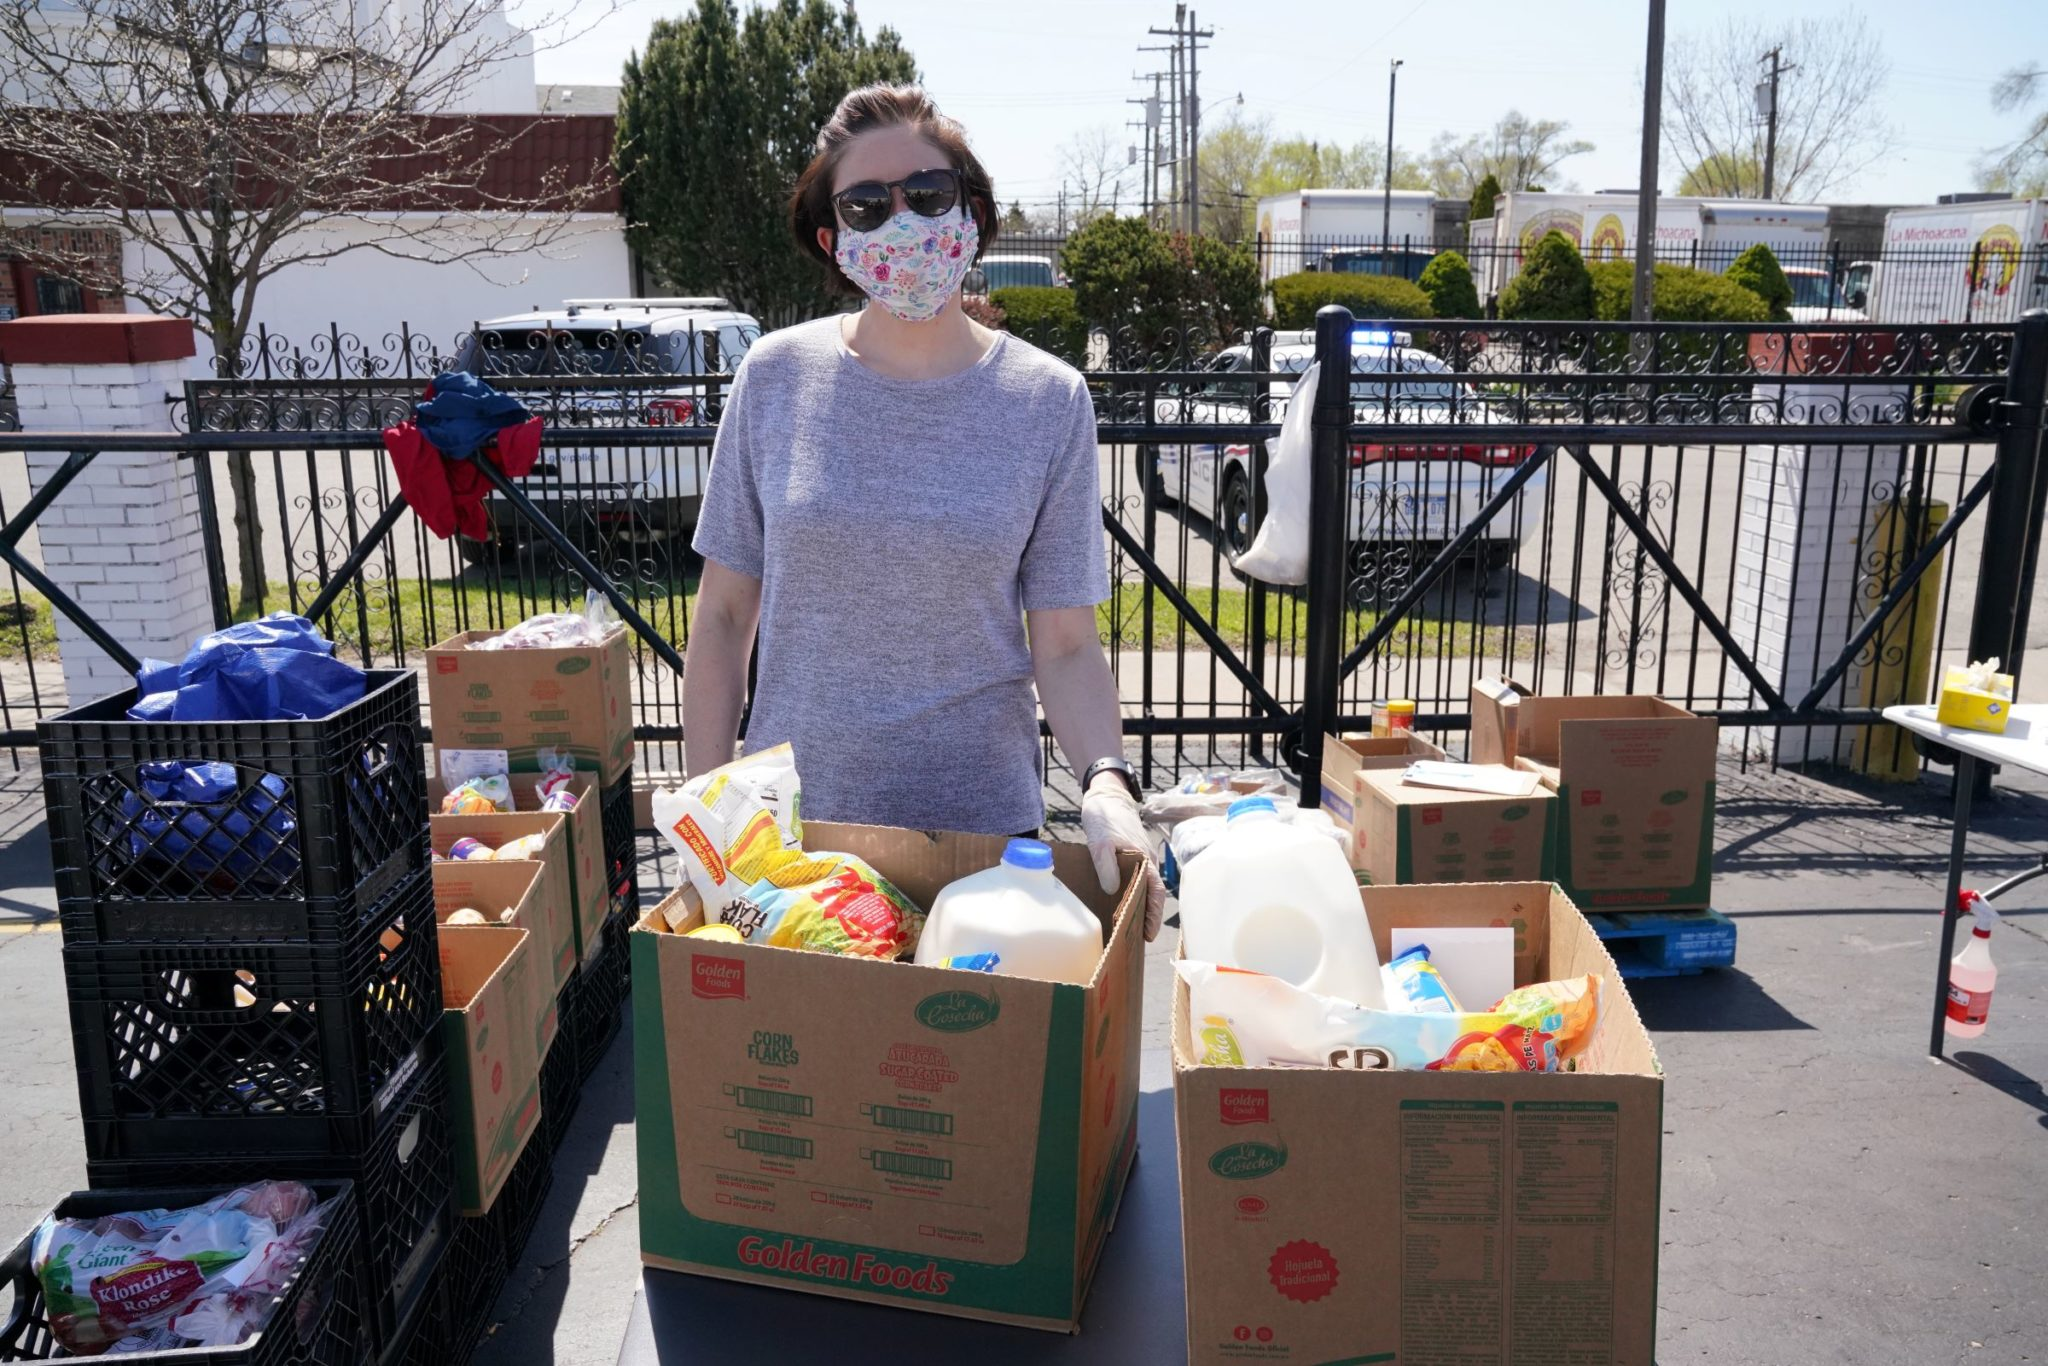 Gleaners staff hands out nutritious groceries at a food distribution in Detroit, Michigan.